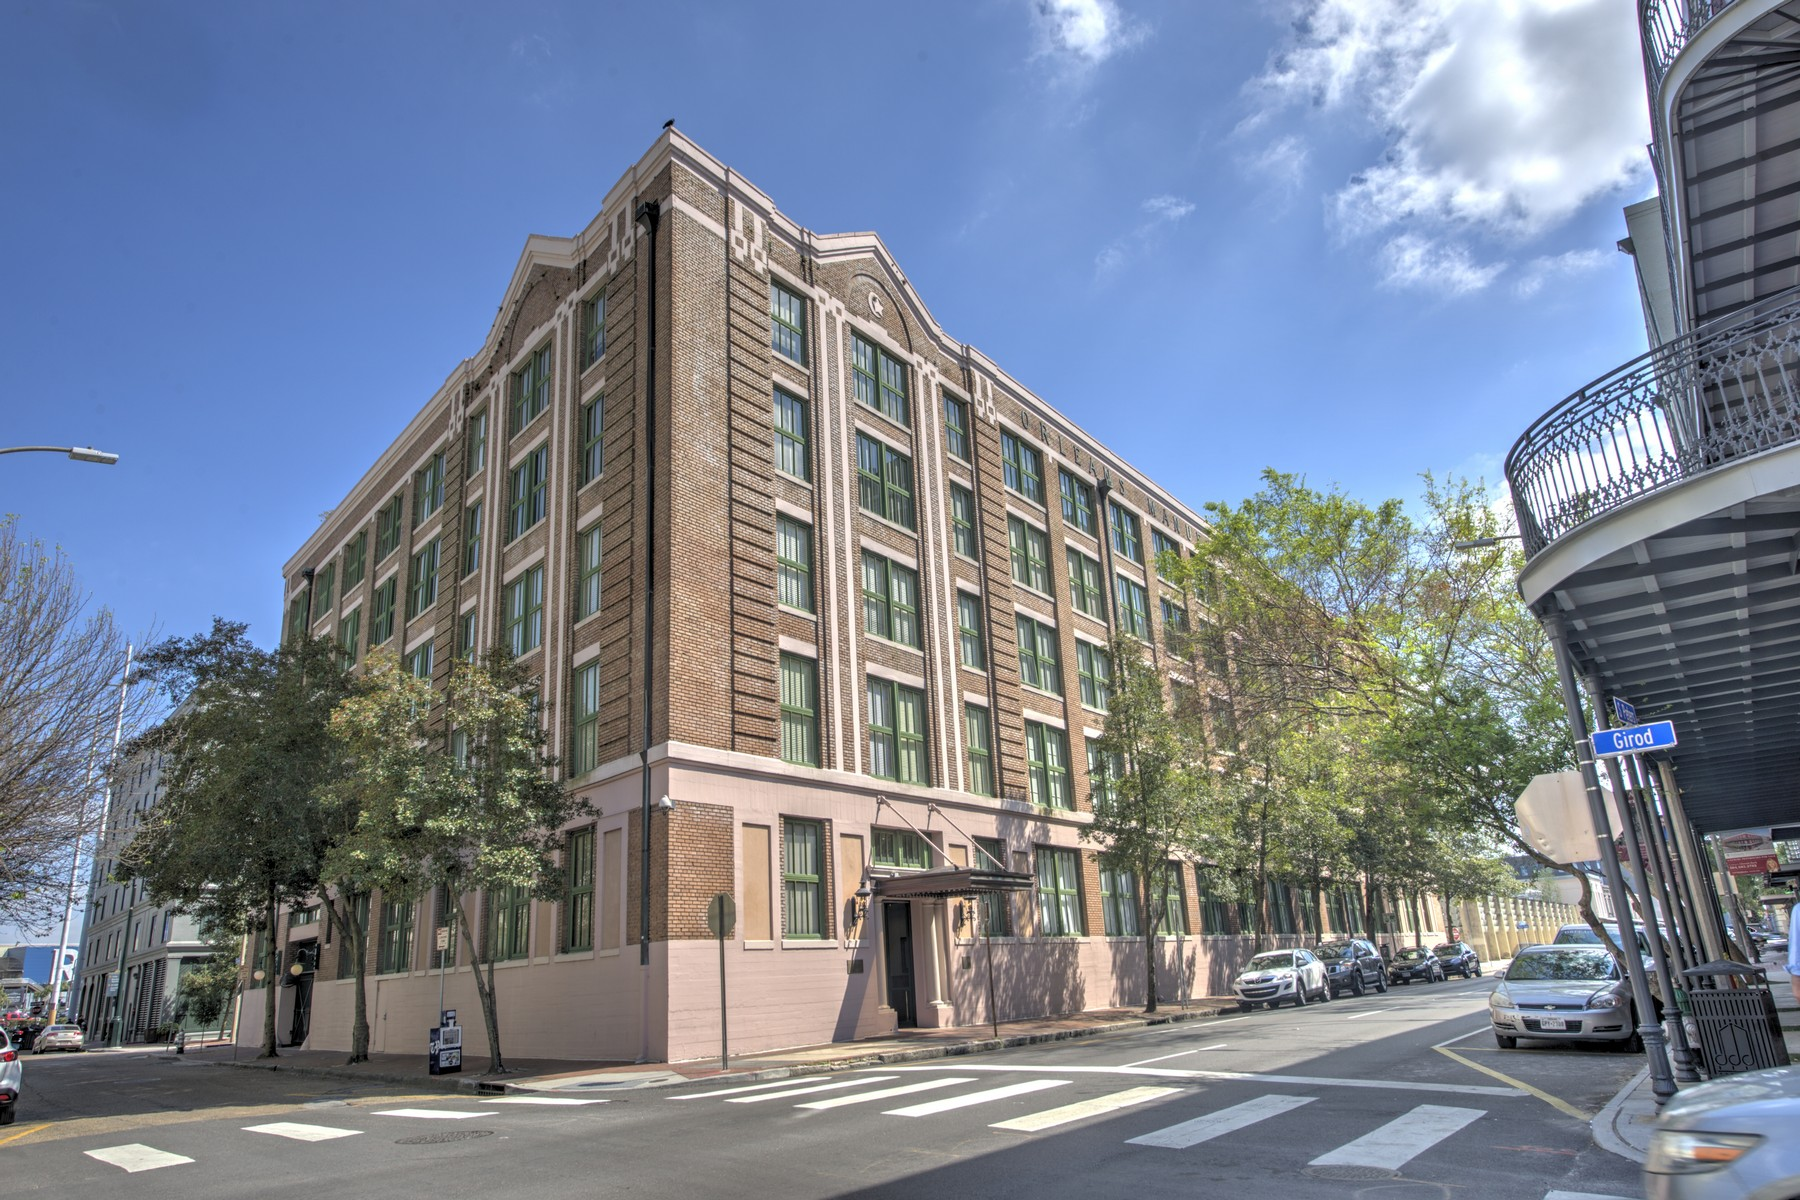 Condominium for Sale at 700 S. Peters Street, #213/4 700 S Peters St #213/4 New Orleans, Louisiana, 70130 United States